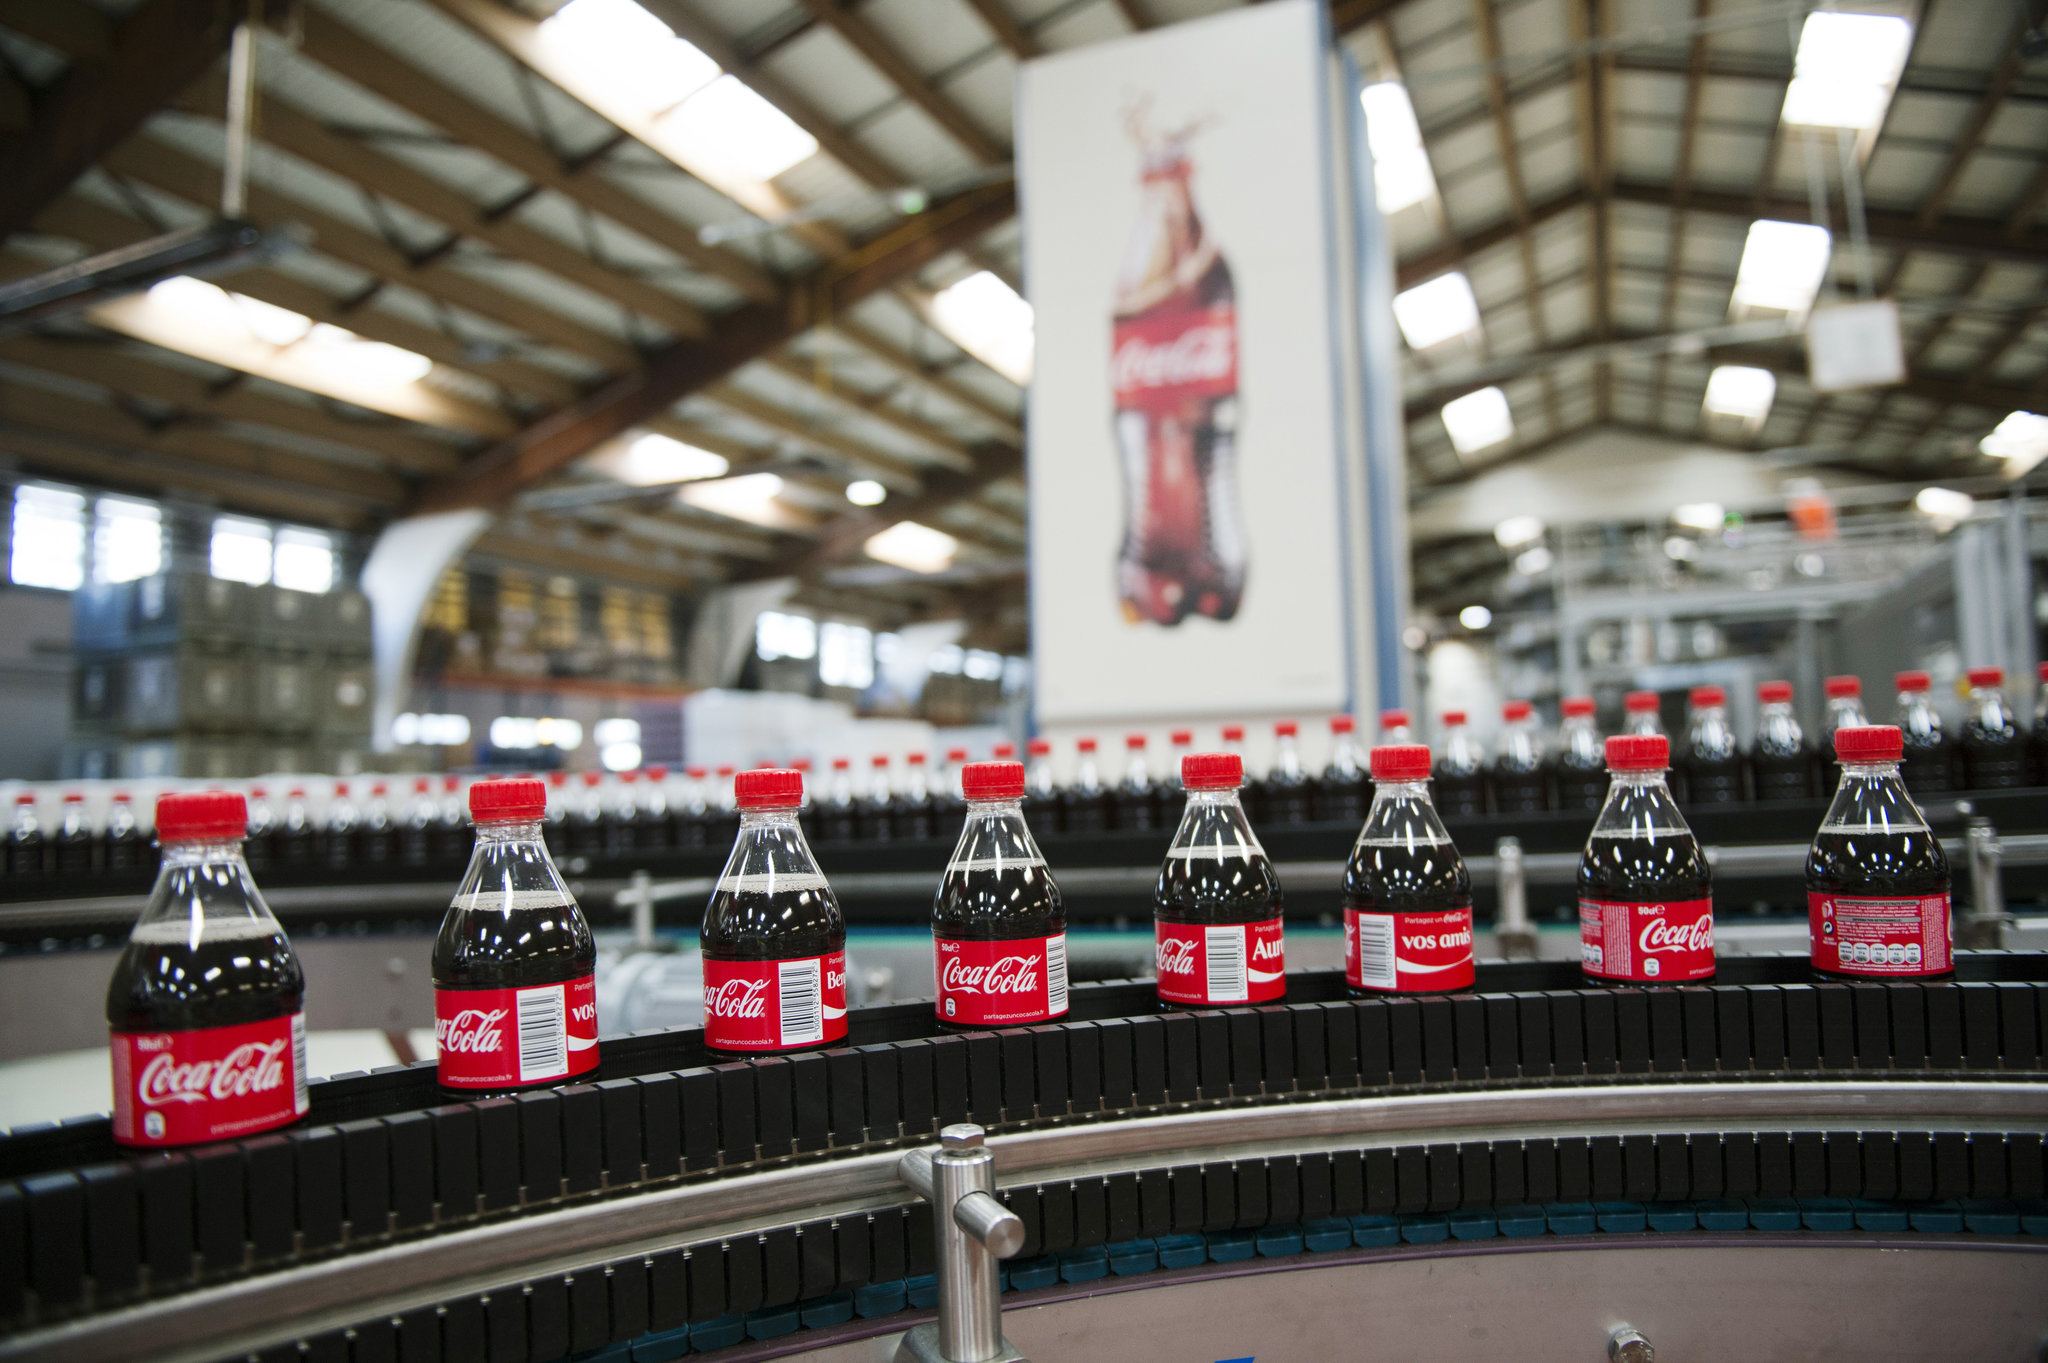 Hope Deepblue won the bid for Coca-Cola Italia, a major breakthrough in the success of central air conditioning in the Fortune 500.